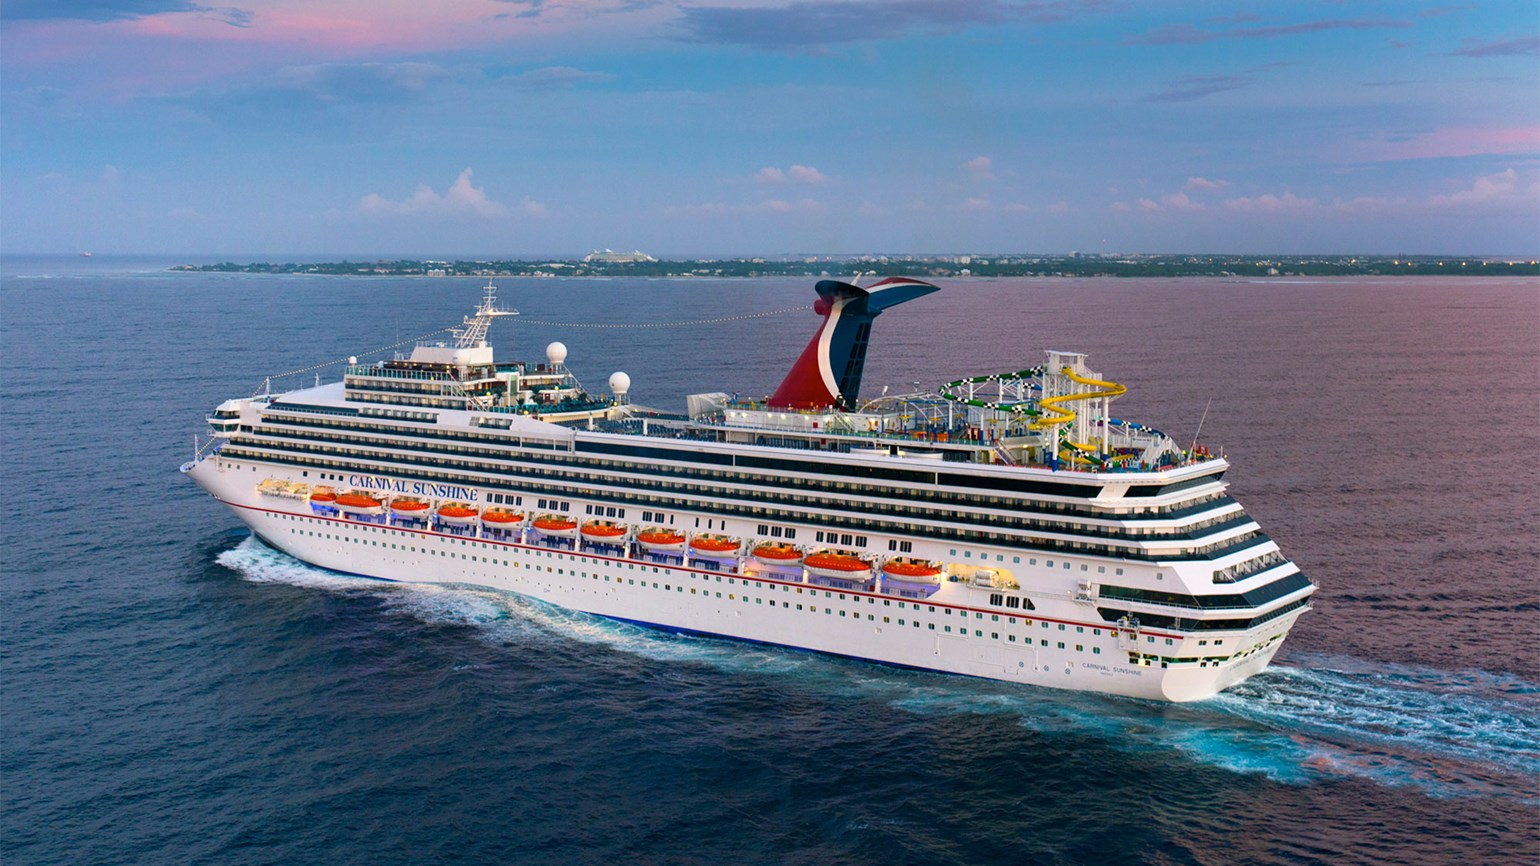 Cruise lines fight to stay afloat